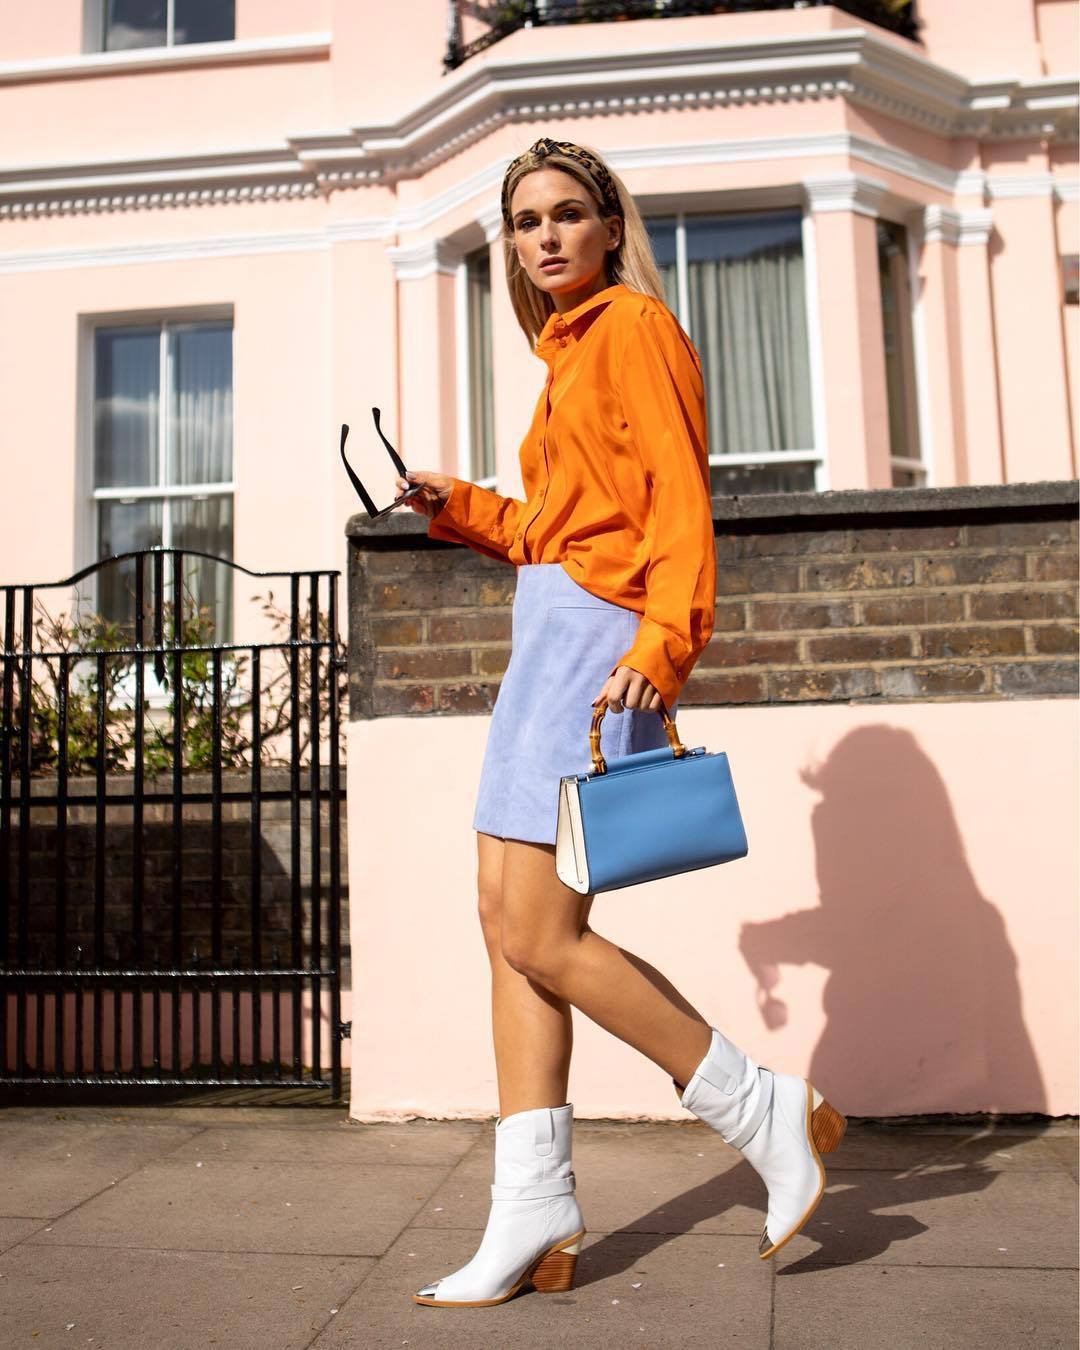 top shirt orange long sleeves white boots ankle boots mini skirt blue skirt handbag blue bag